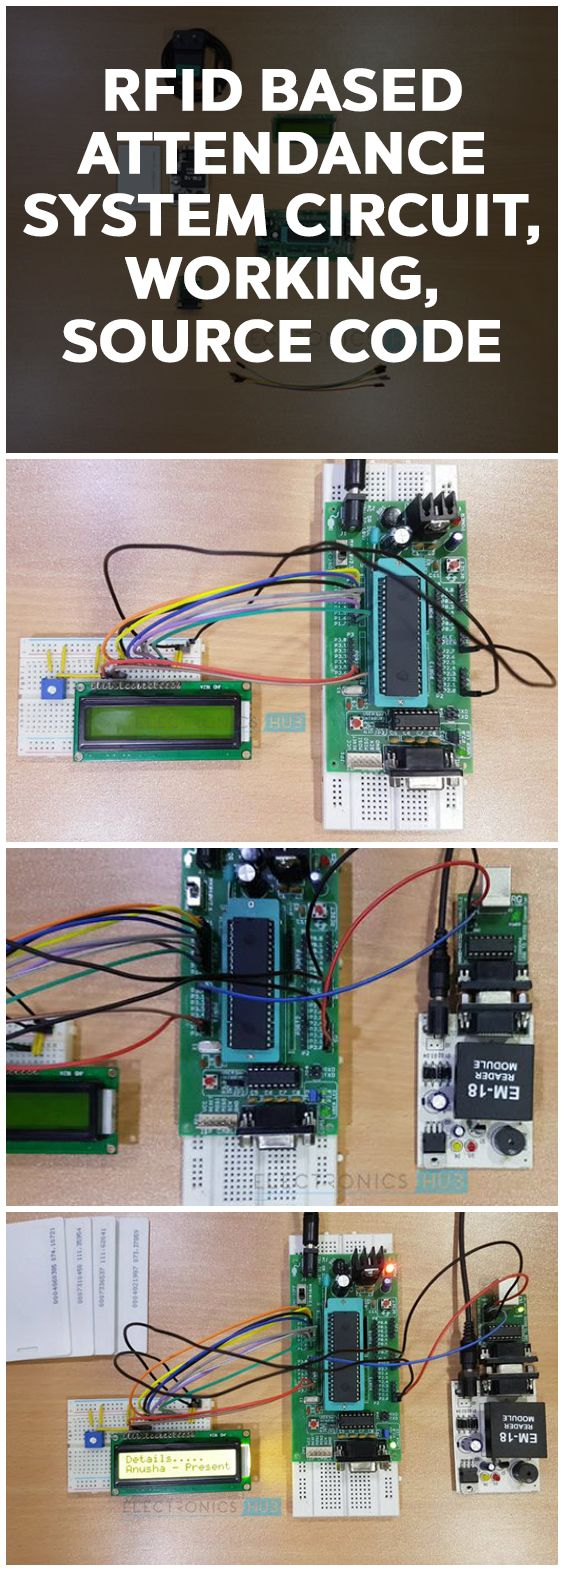 Rfid Based Attendance System Circuit Using Microcontroller Electronics Board 8051 Projects Power Supply Design In This Article We Have Implemented Two Different